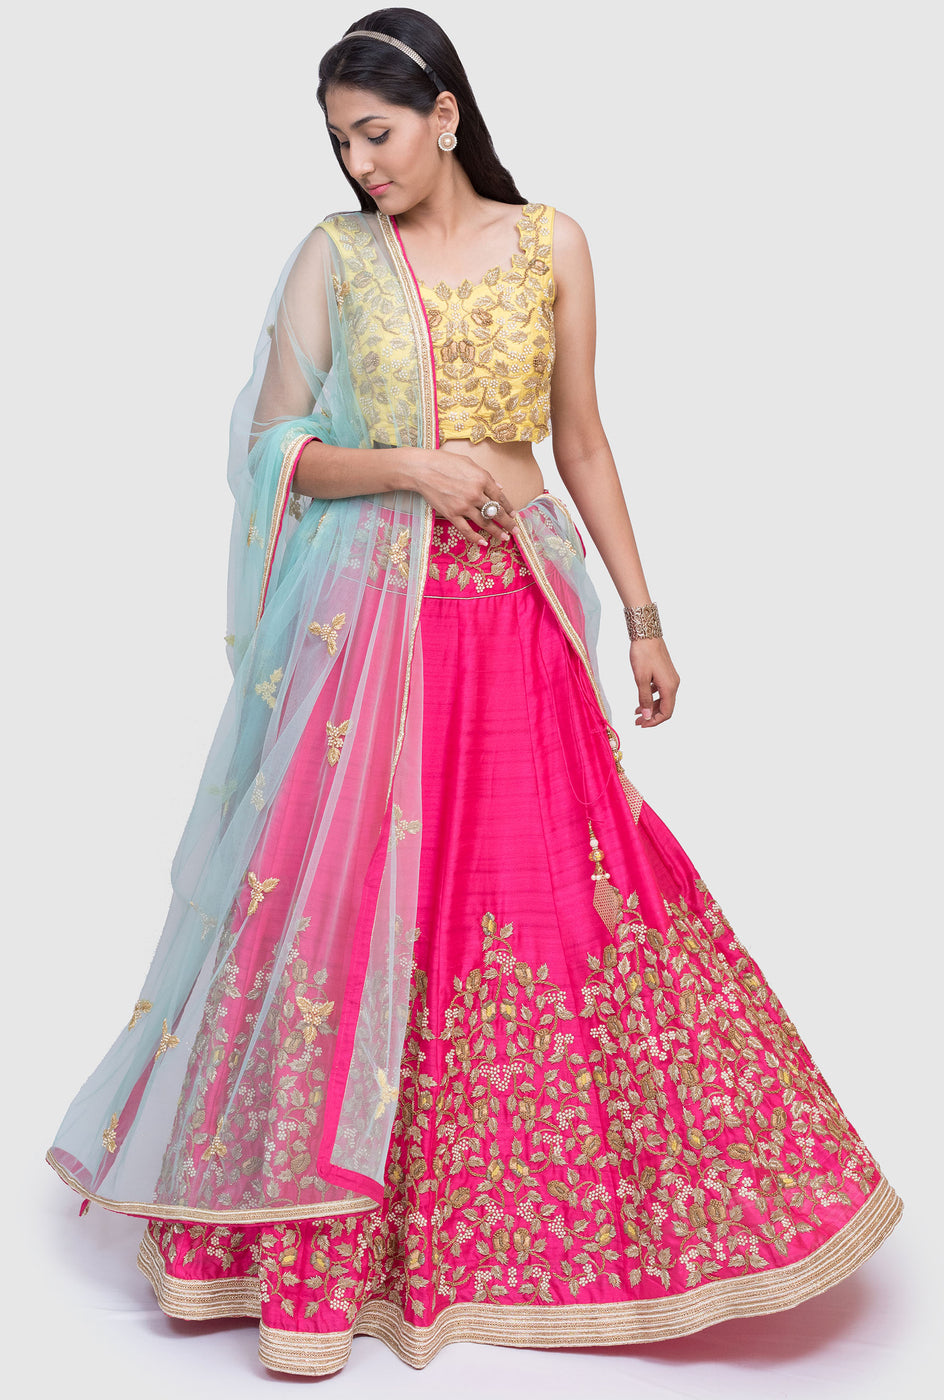 Yashica yellow and pink lehenga set